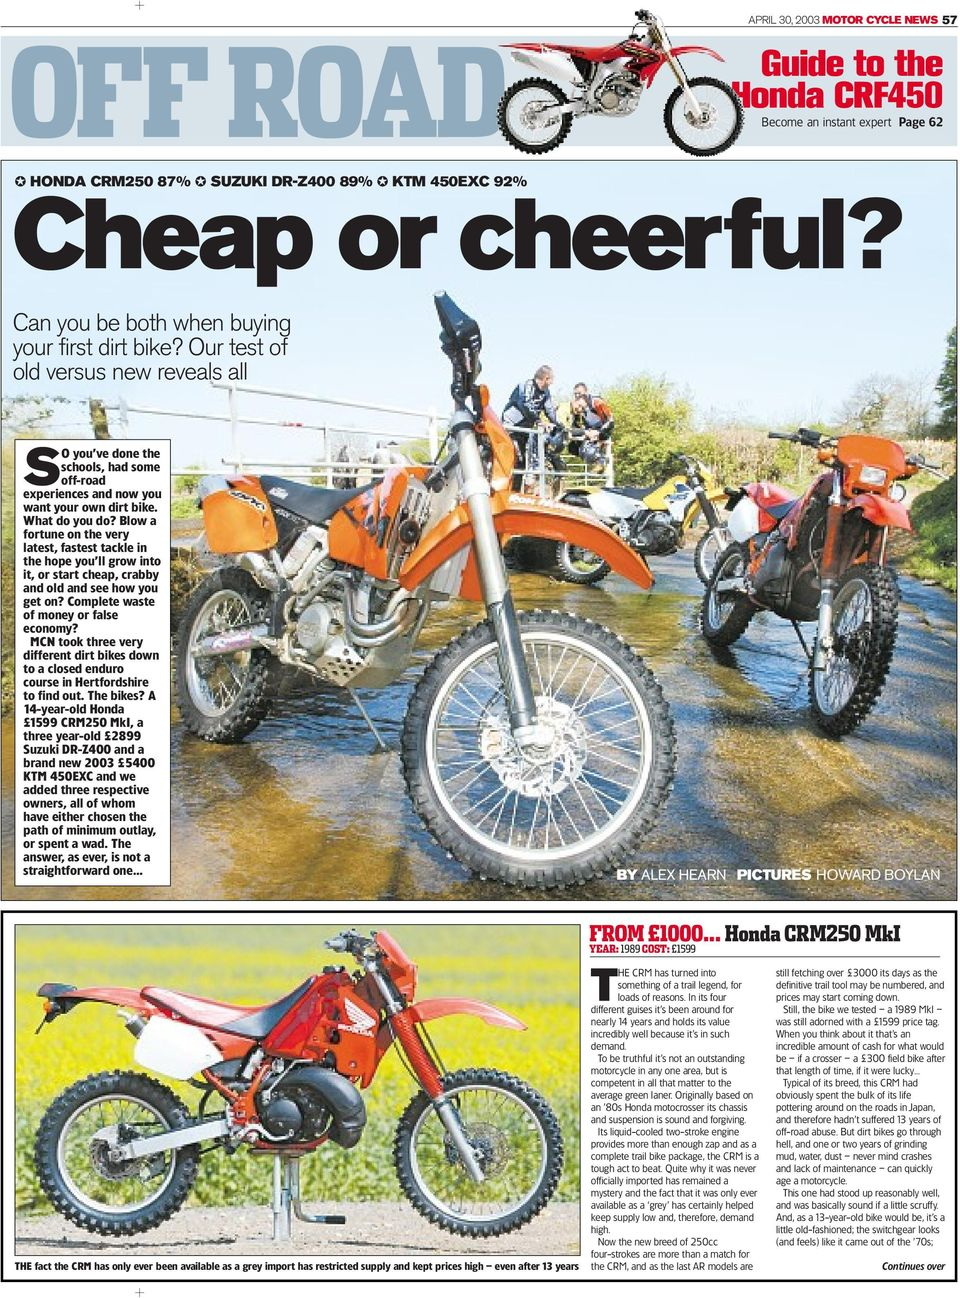 off road cheap or cheerful guide to the honda crf450 become an